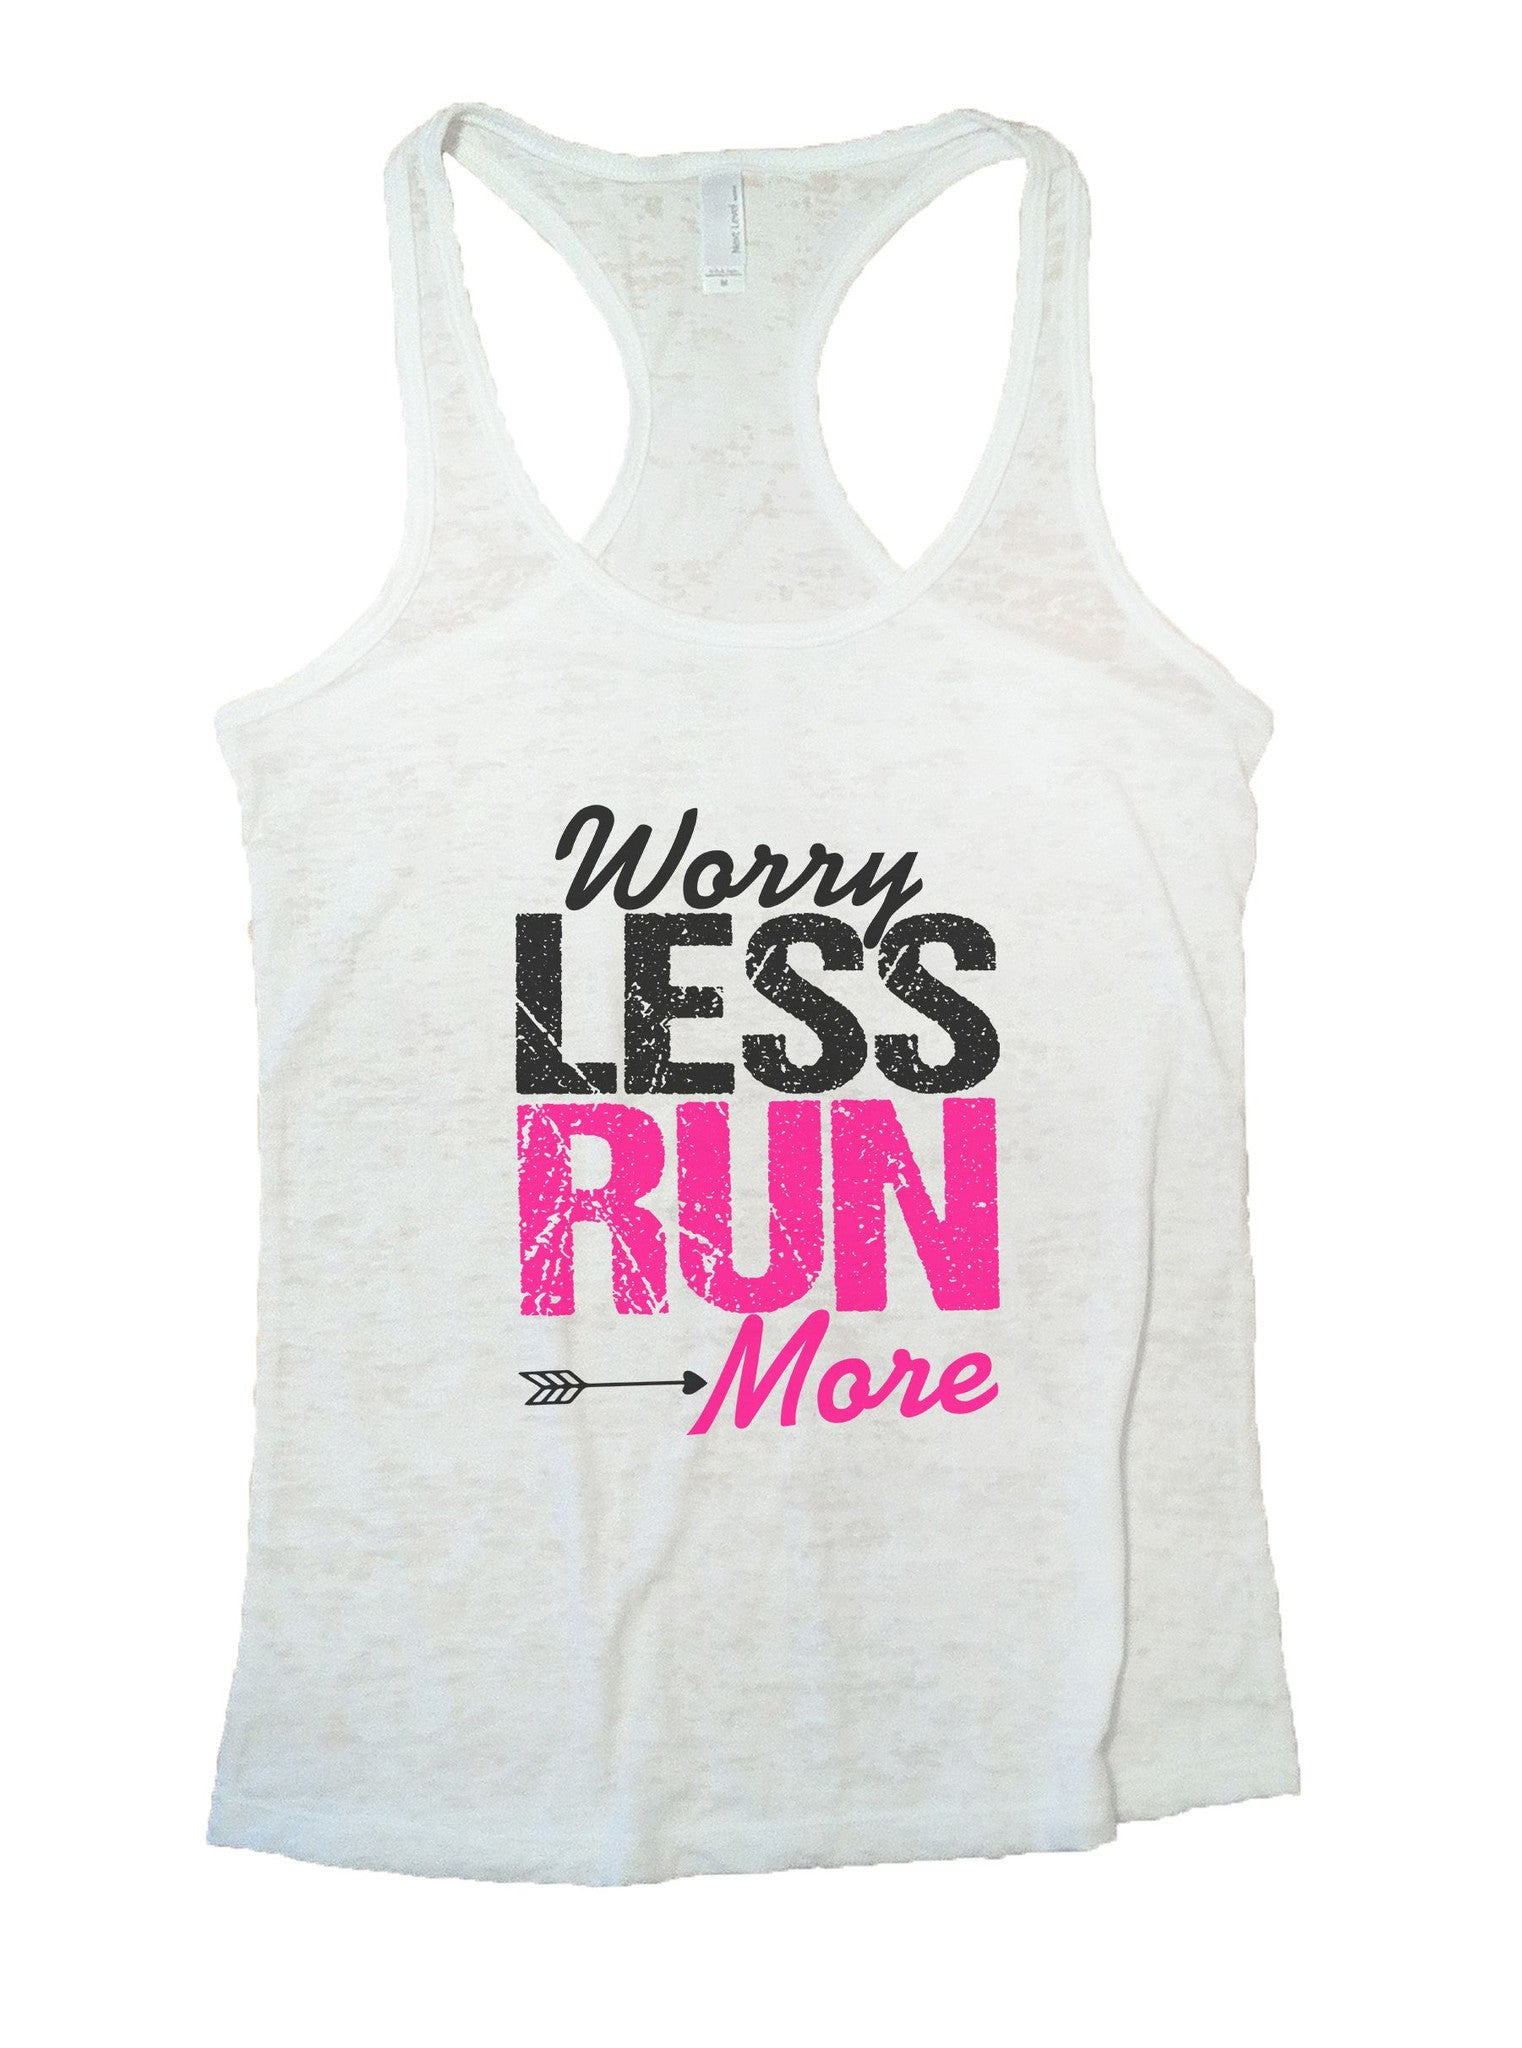 Worry Less Run More Burnout Tank Top By BurnoutTankTops.com - 1019 - Funny Shirts Tank Tops Burnouts and Triblends  - 6